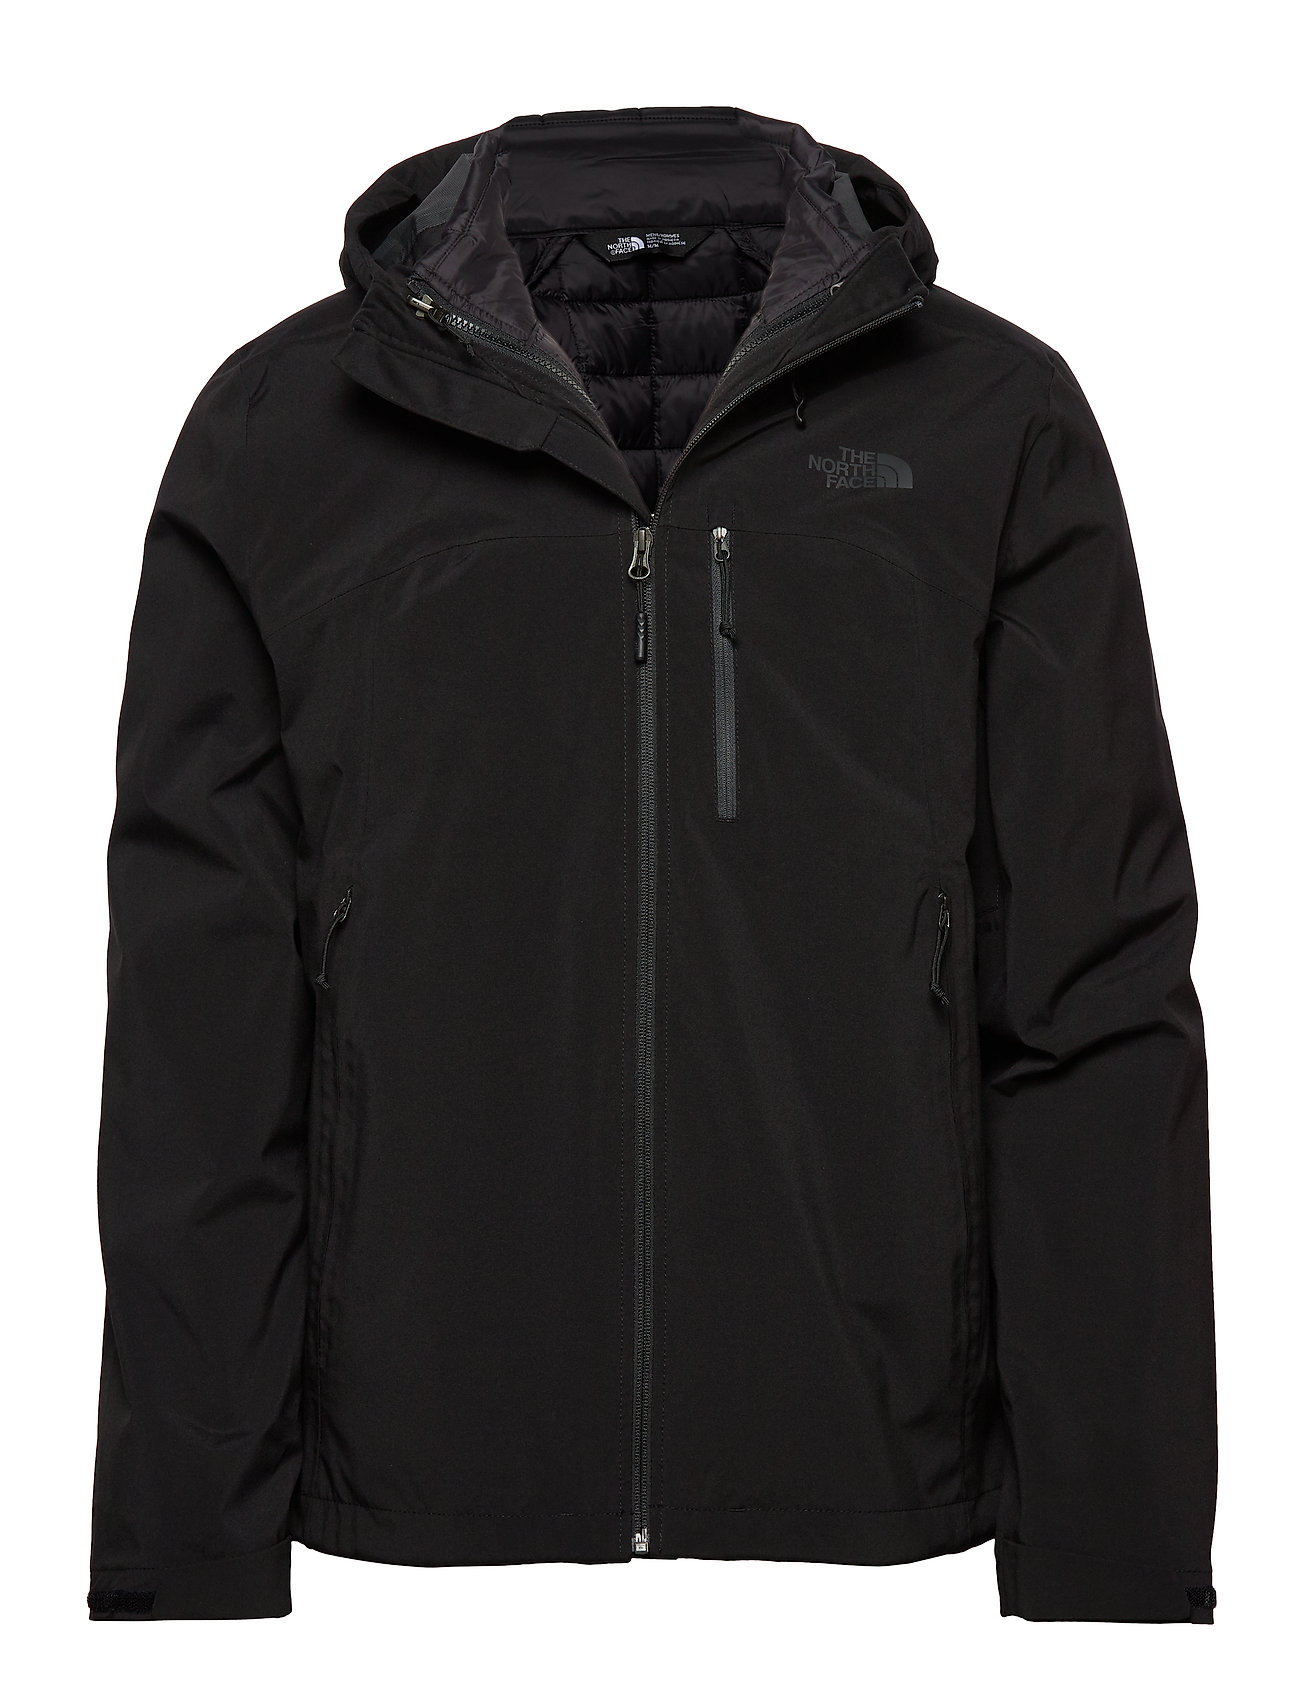 The North Face M THERMOBALL TRICLIM - TNF BLACK/TNF B